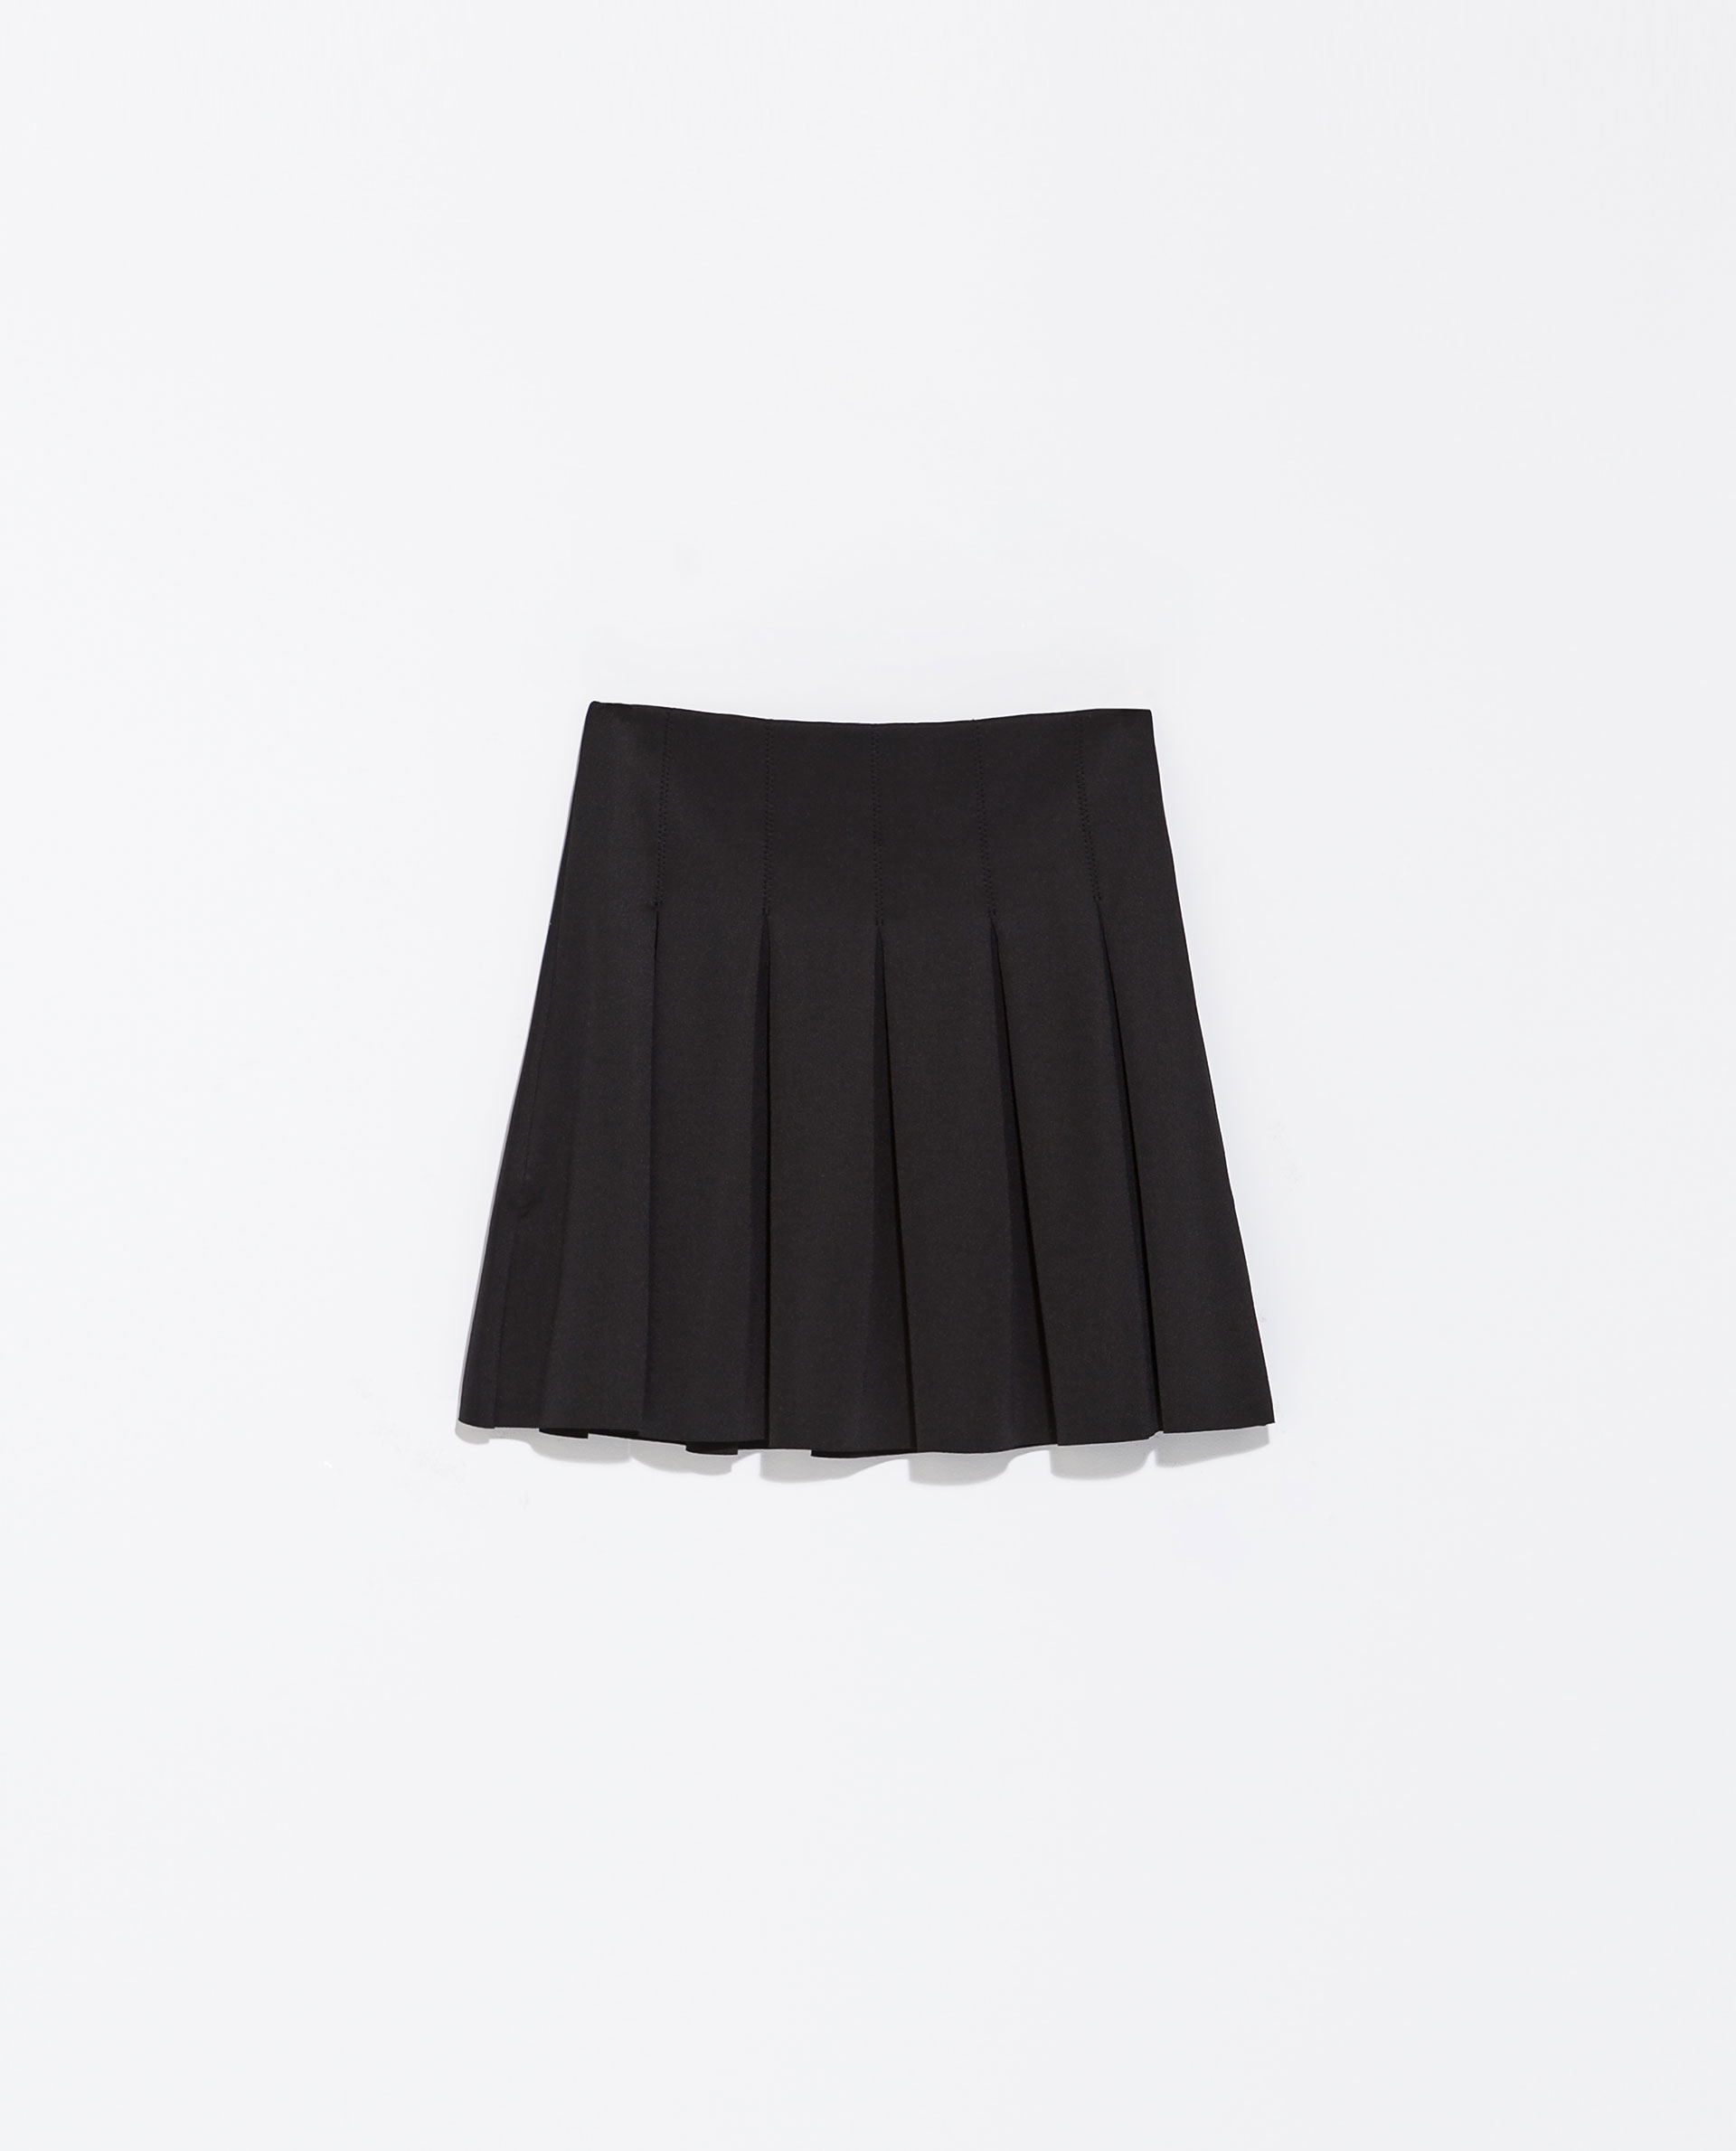 Brilliant Adidas / Skirt Pleated In Black Women [BK6187] - $43.45  Adidas New York Store Adidas Shoes ...